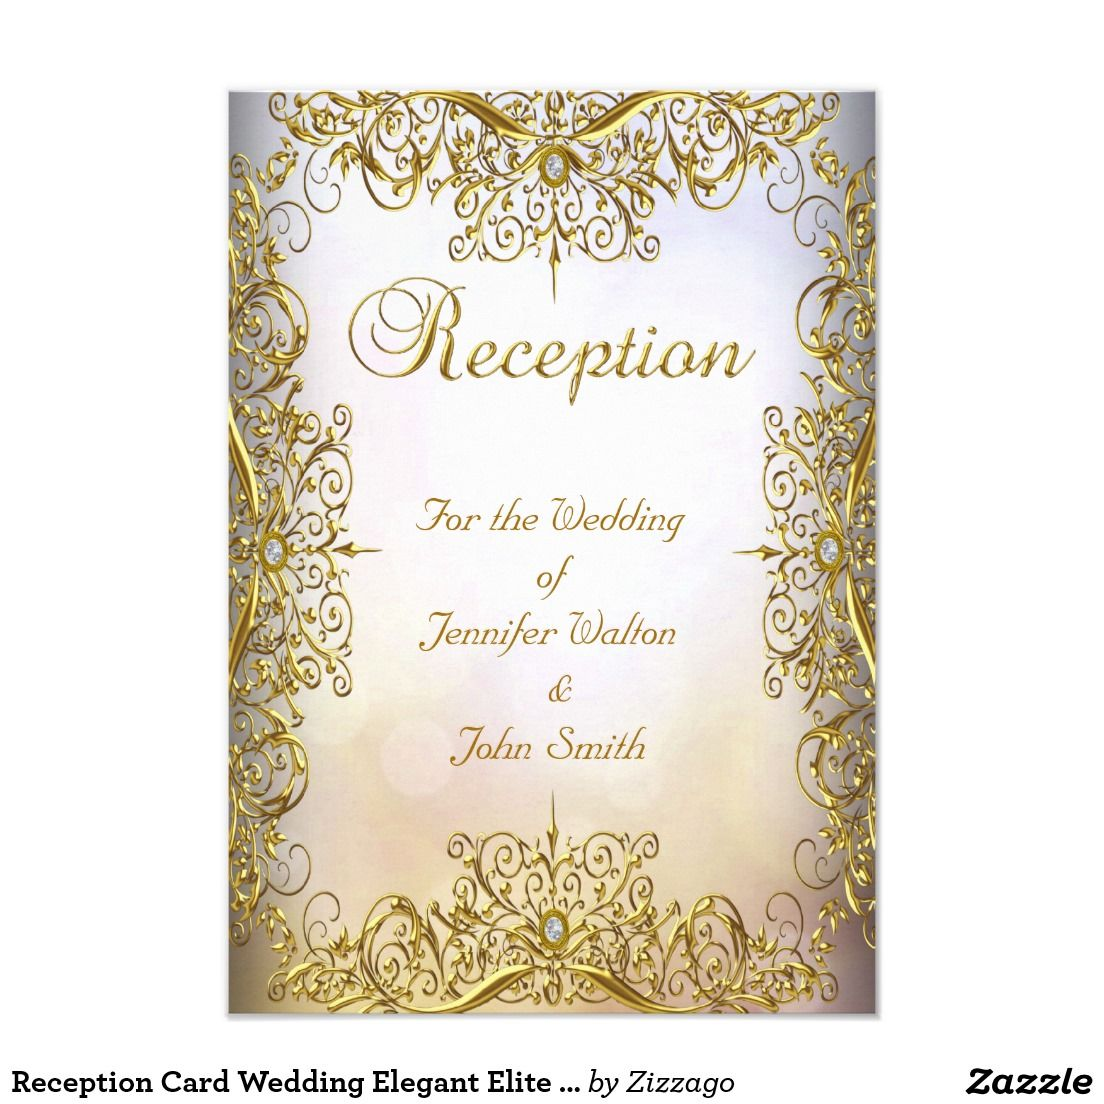 Reception Card Wedding Elegant Elite White Gold | Card wedding ...